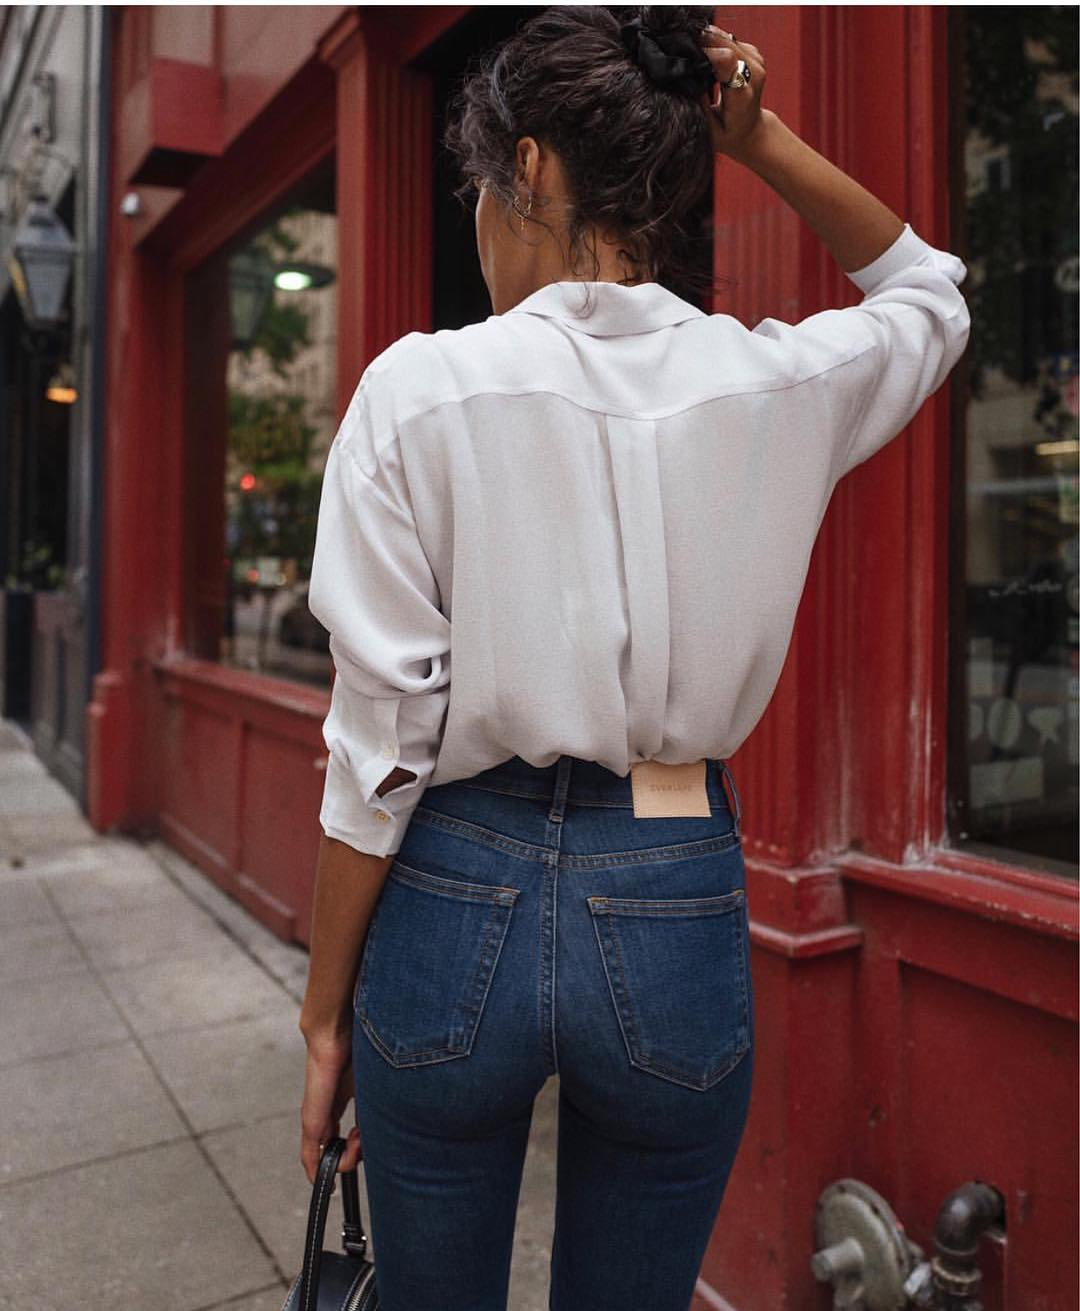 Simple Classics For Street Walks: White Shirt And Blue Skinny Jeans 2020